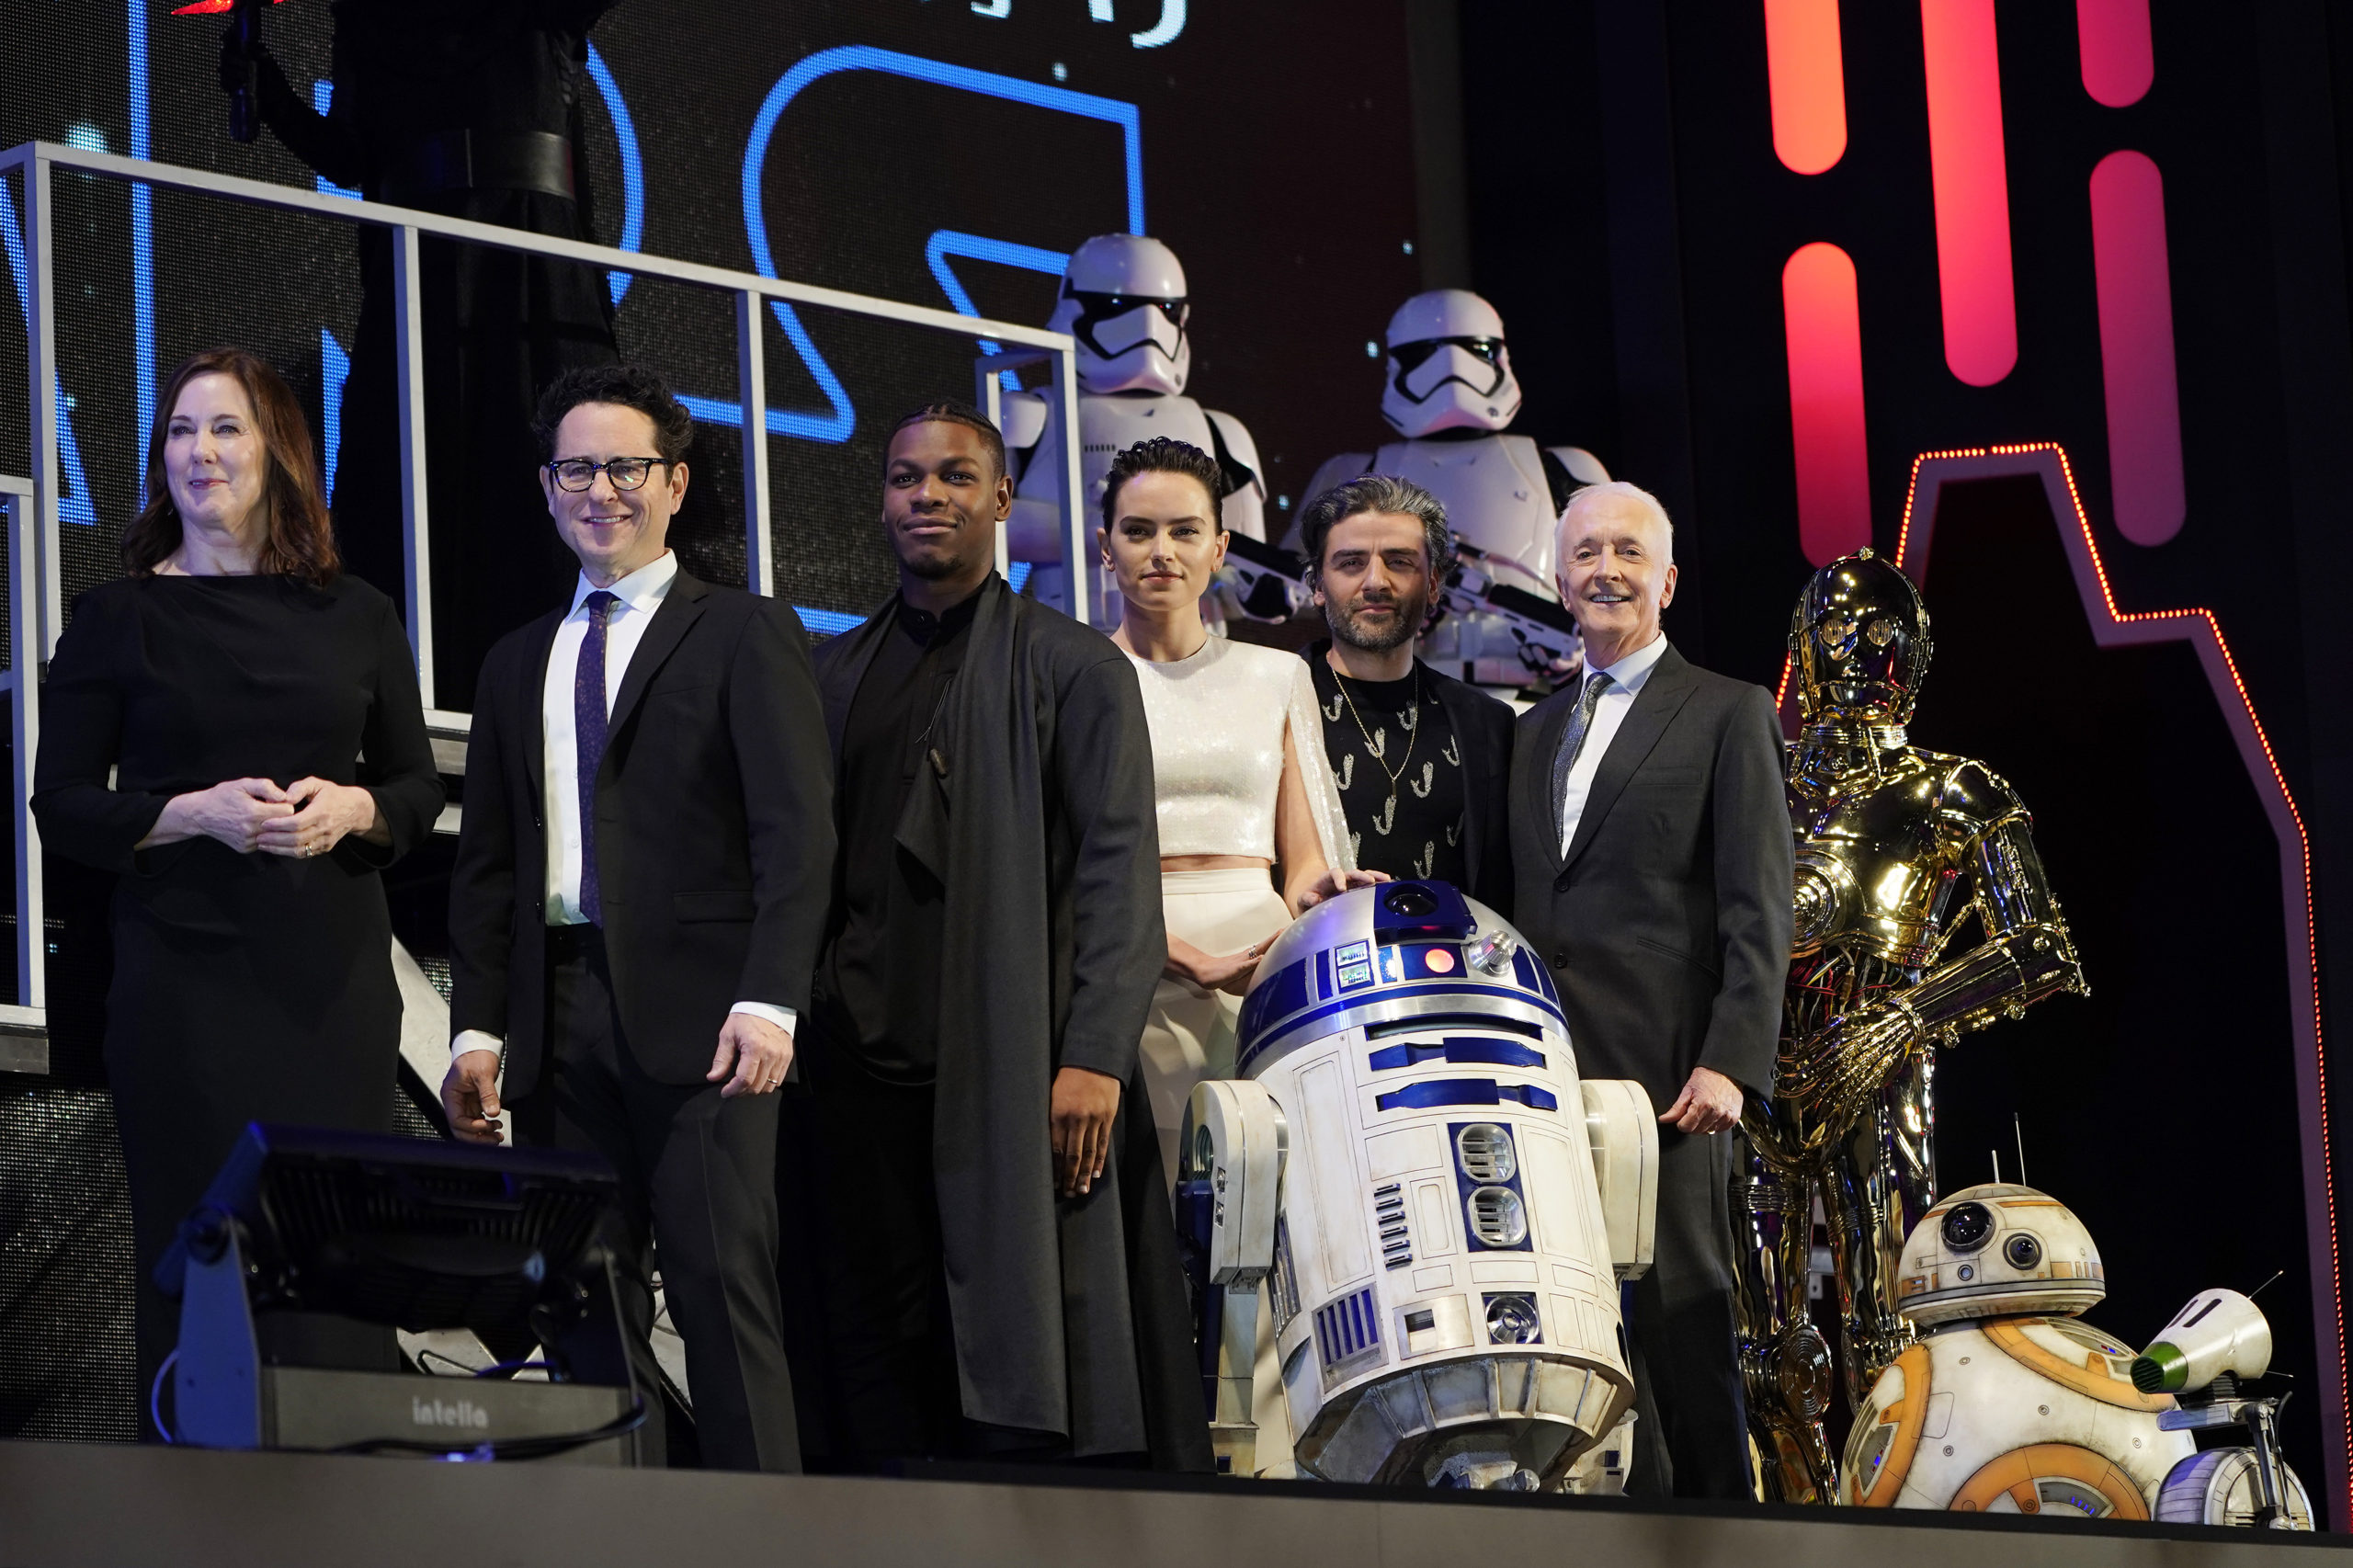 The Cast Of Star Wars The Rise Of Skywalker Attend Fan Screening In Japan Beautifulballad